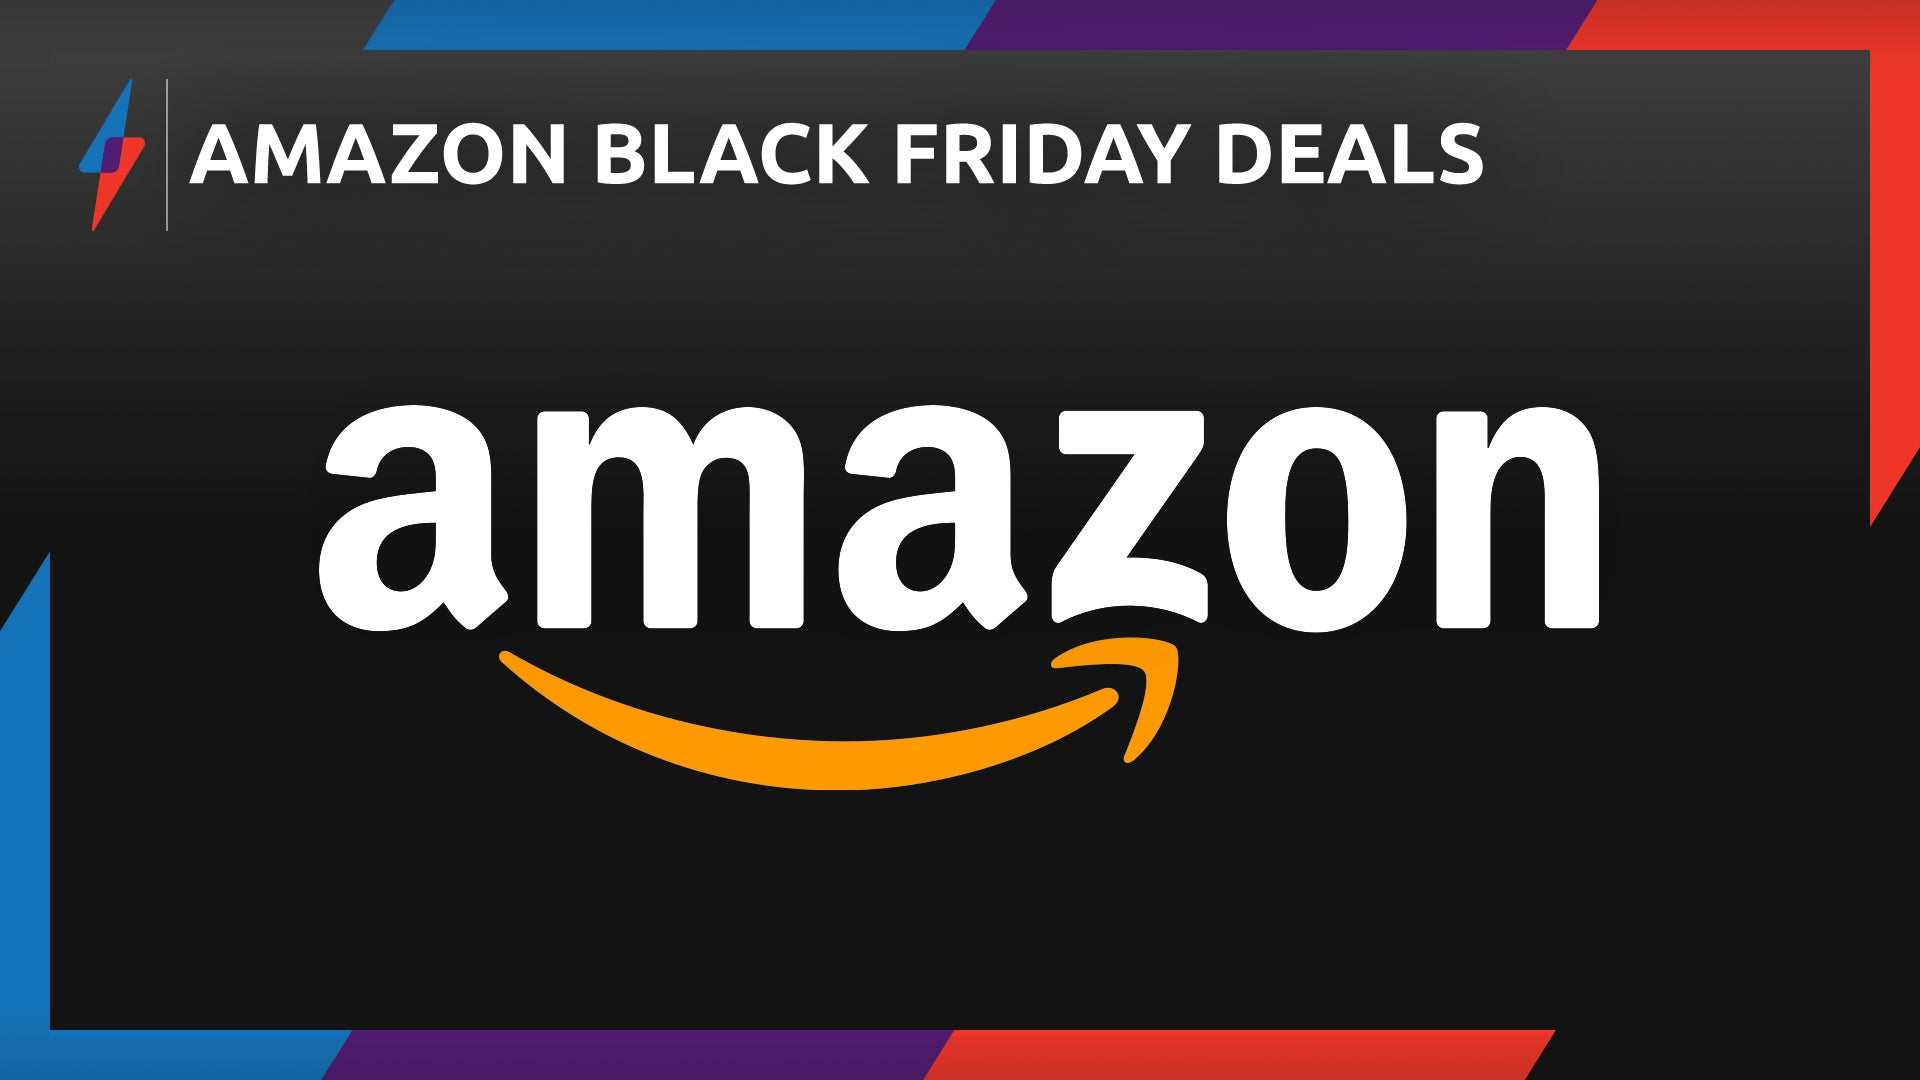 Amazon Black Friday Deals – What we can expect from the retailer